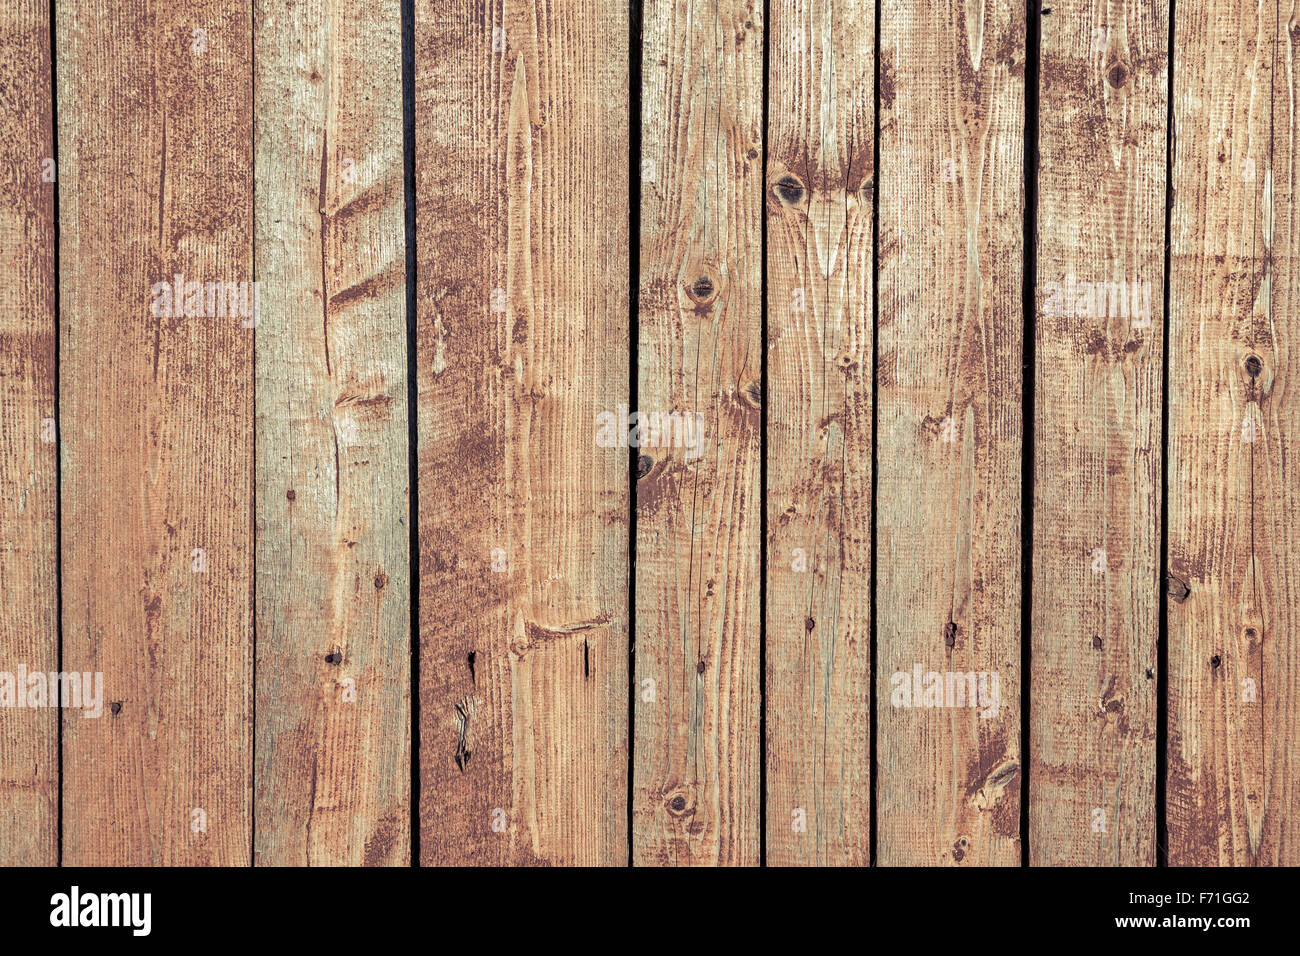 Old wood planks oriented vertically. Wood texture with weathered paint and cross process effect - Stock Image